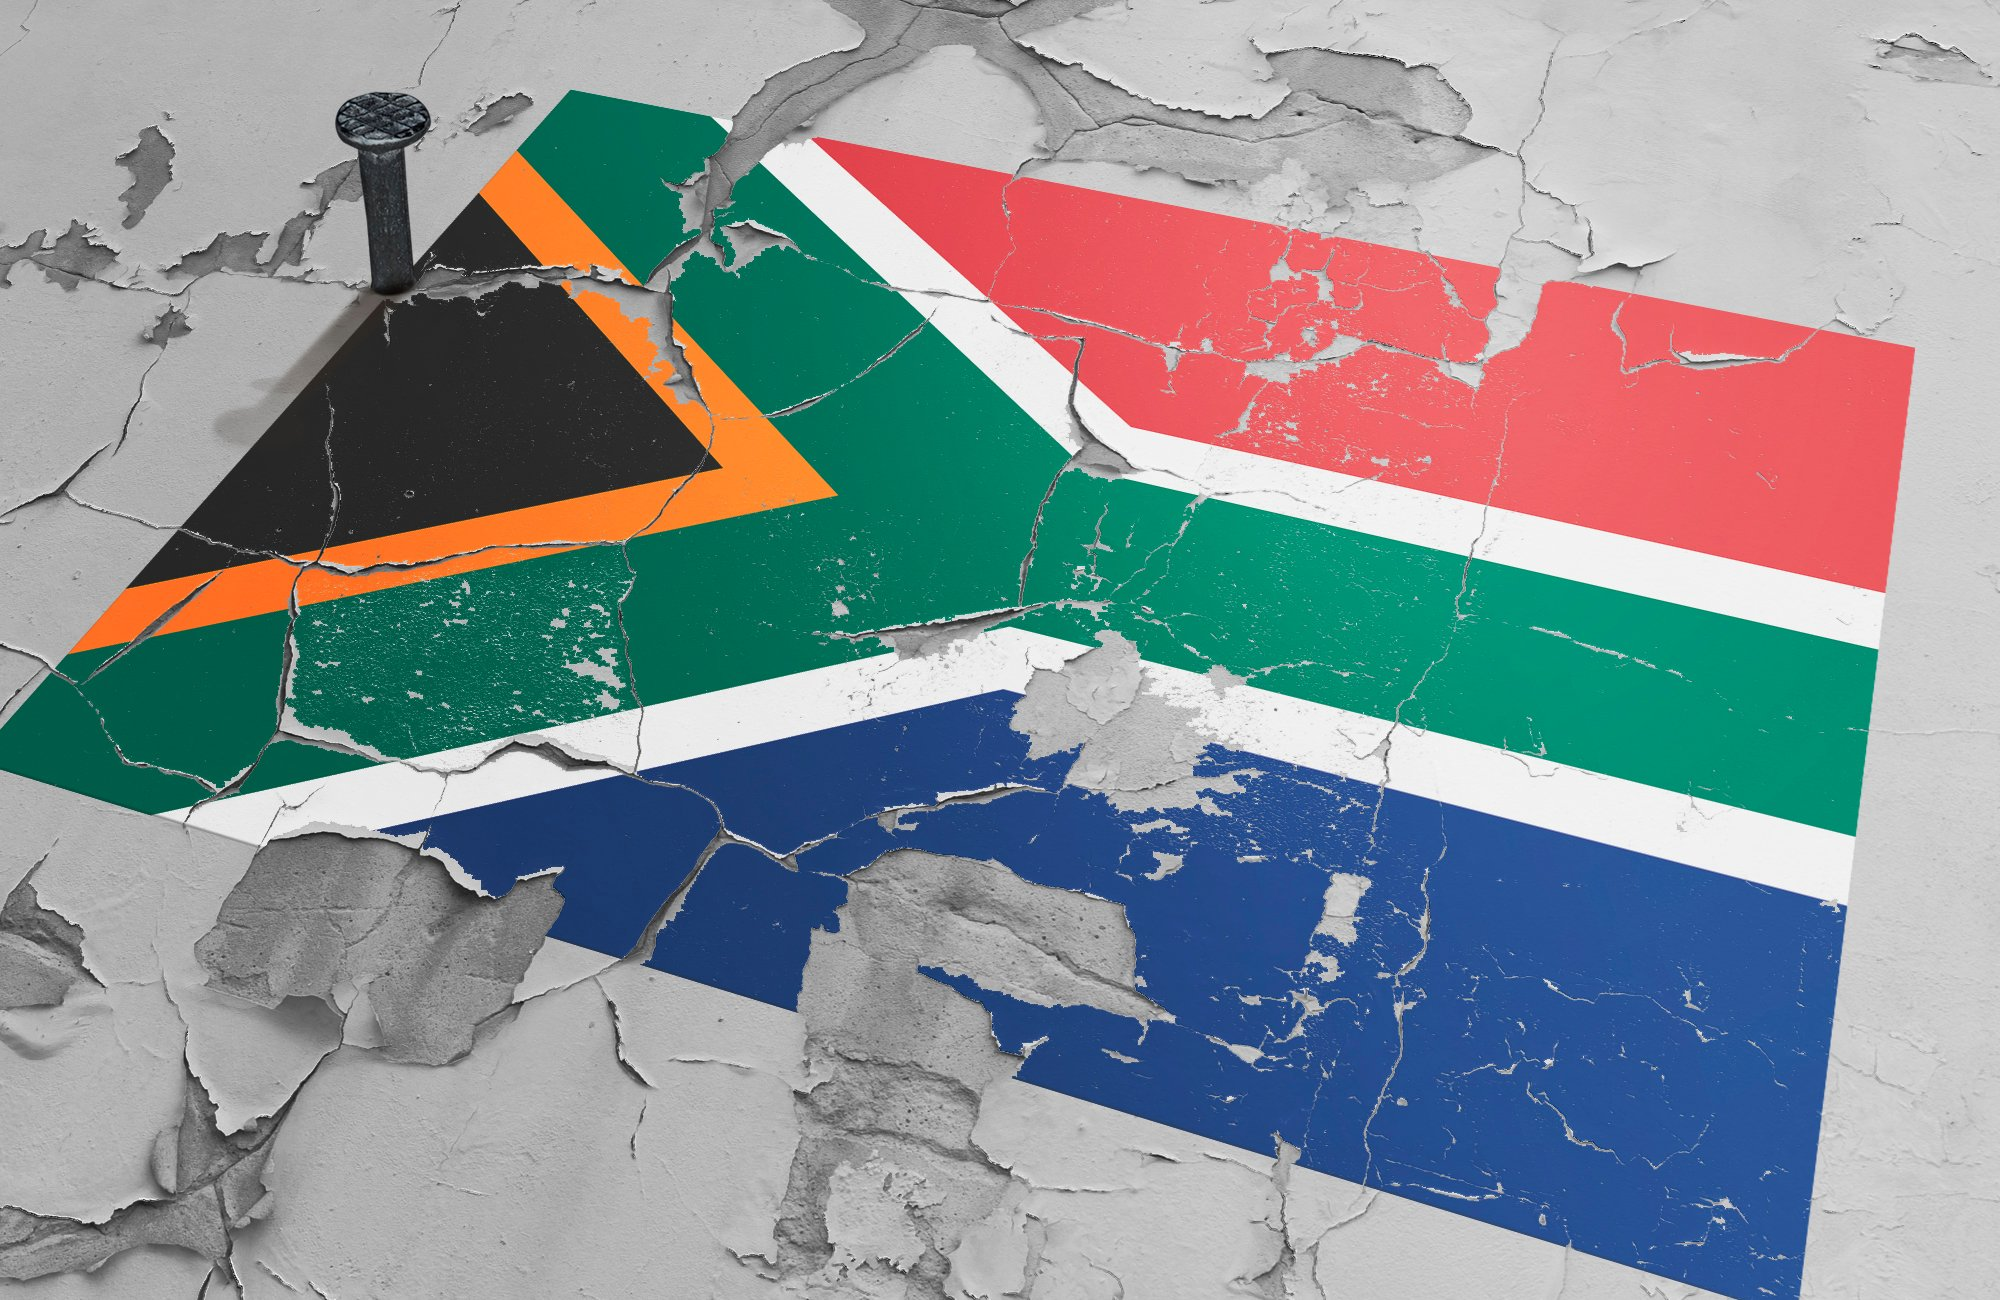 South Africa is 10 years behind on spectrum